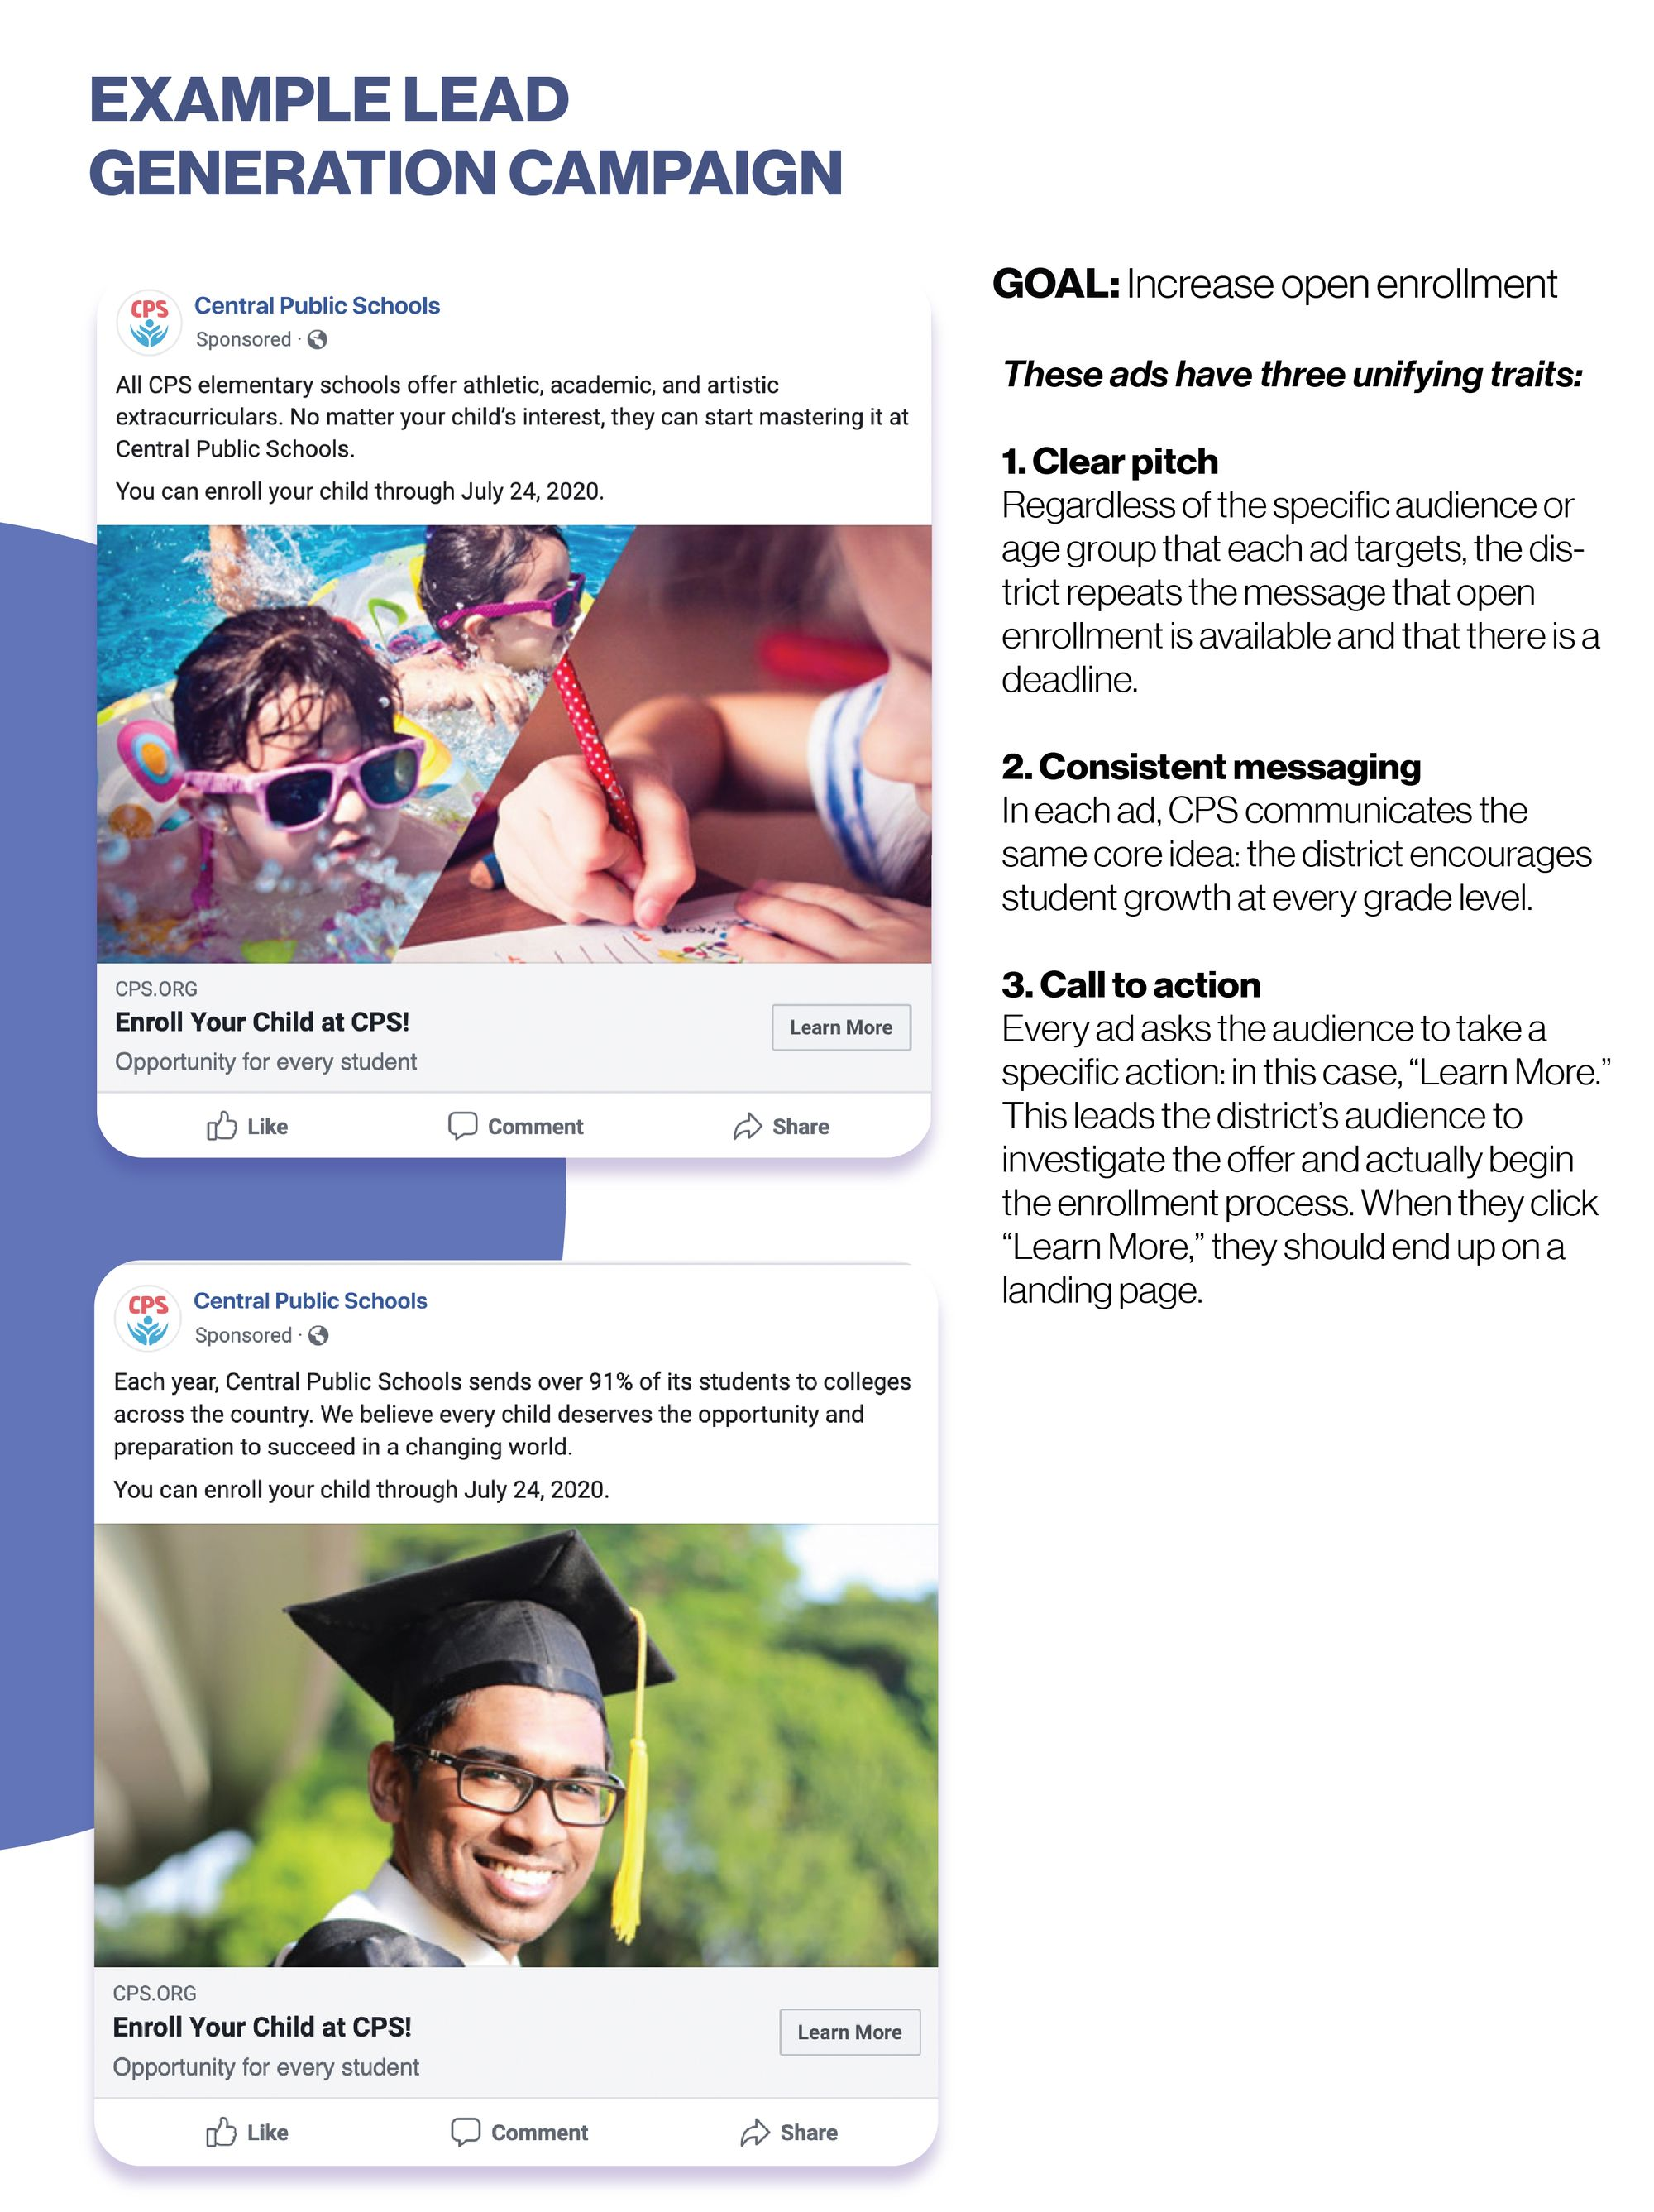 Two example Facebook advertisements for a lead generation enrollment campaign. Both have a clear pitch, consistent messaging, and a call to action.